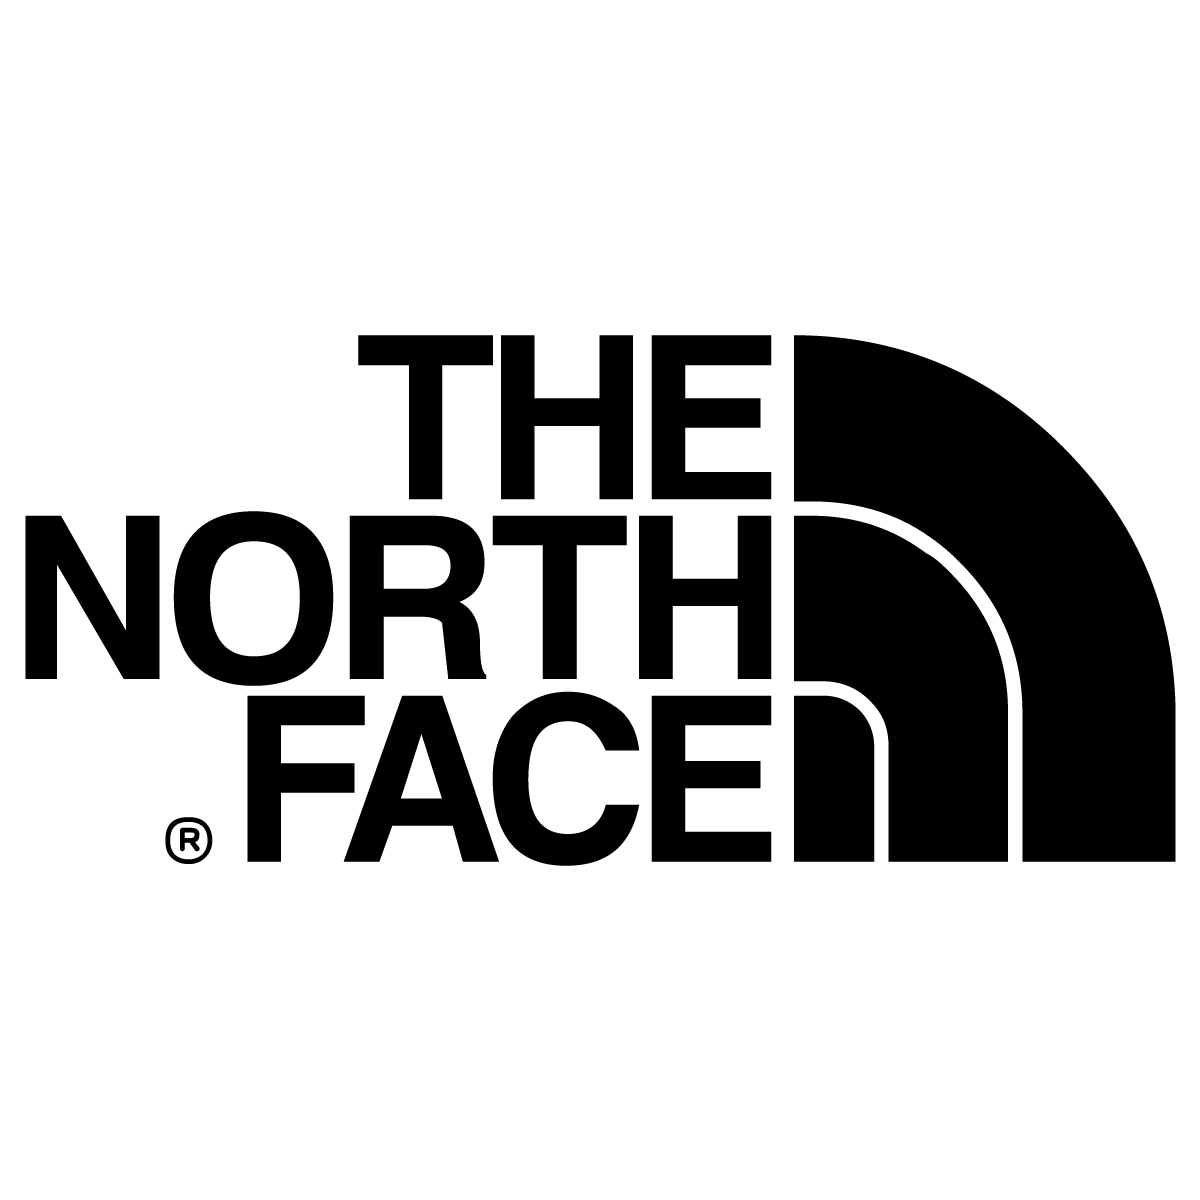 the-north-face-logo-vector-black.png